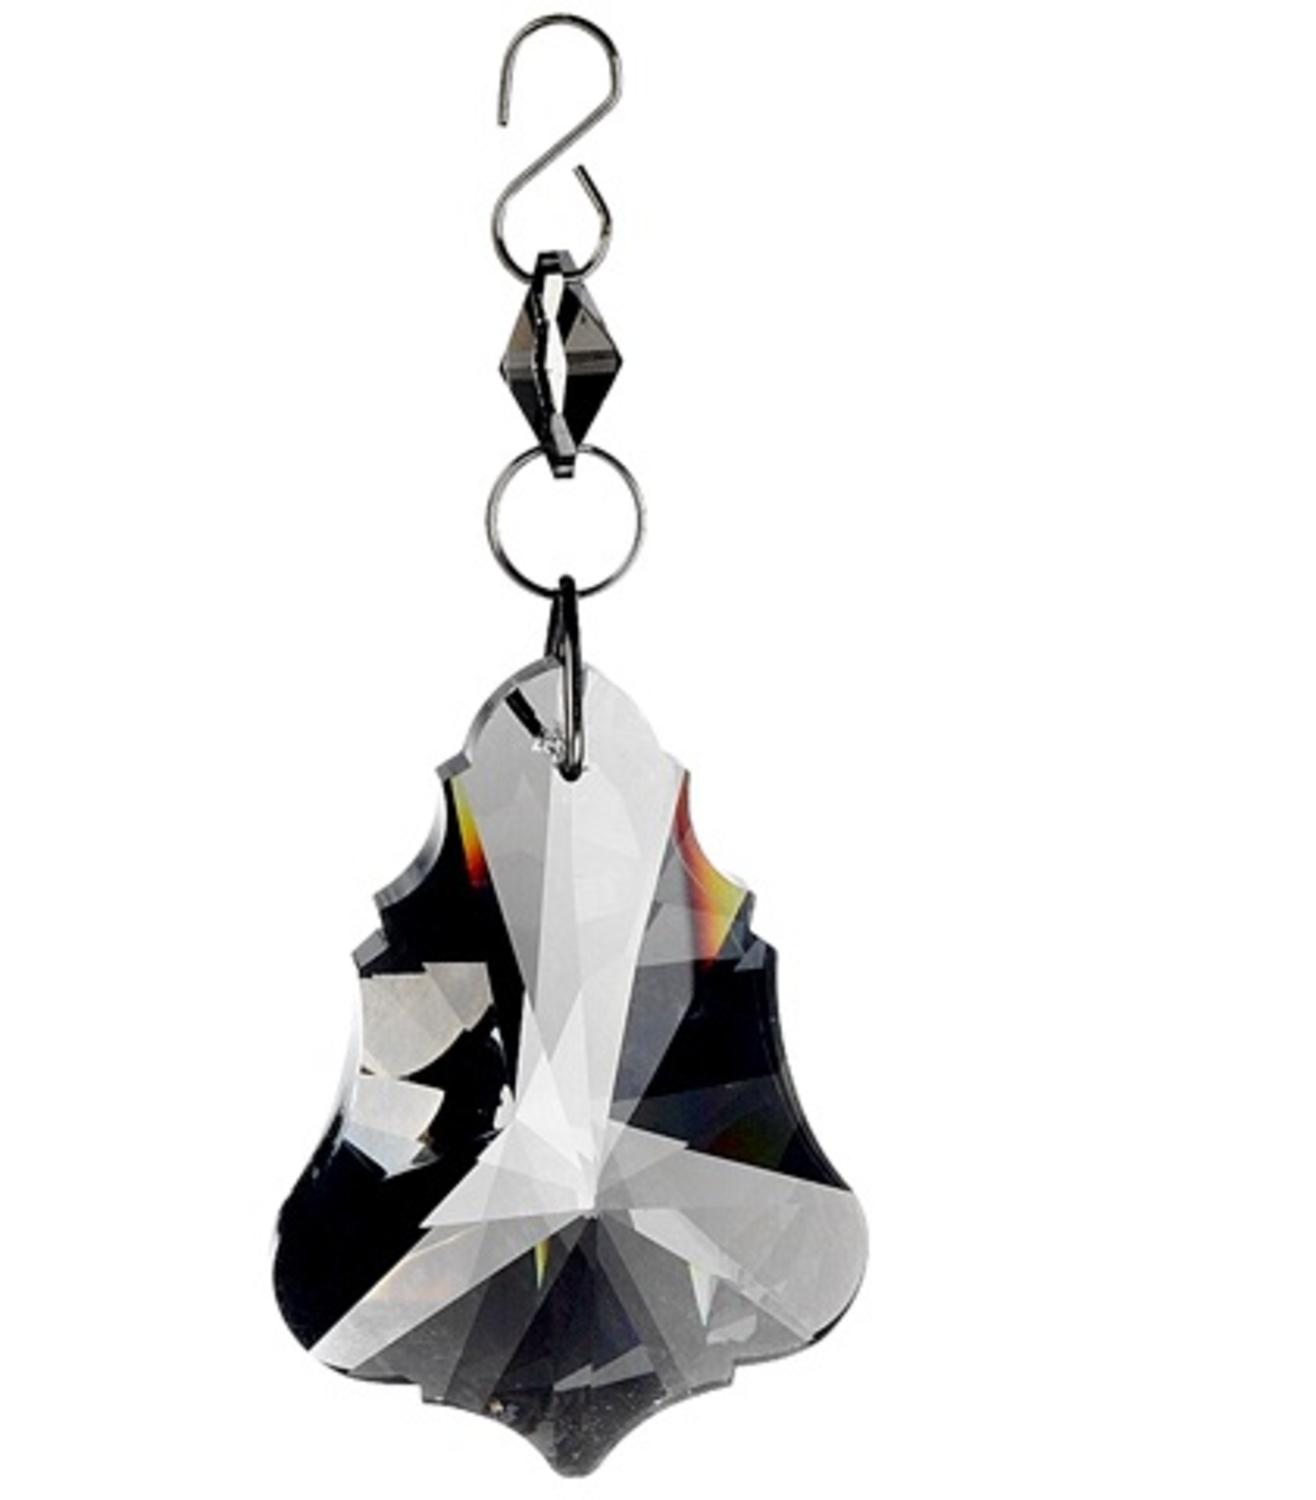 ''5'''' Seasons of Elegance Smokey Gray Prismatic Jewel DANGLE Christmas Ornament''